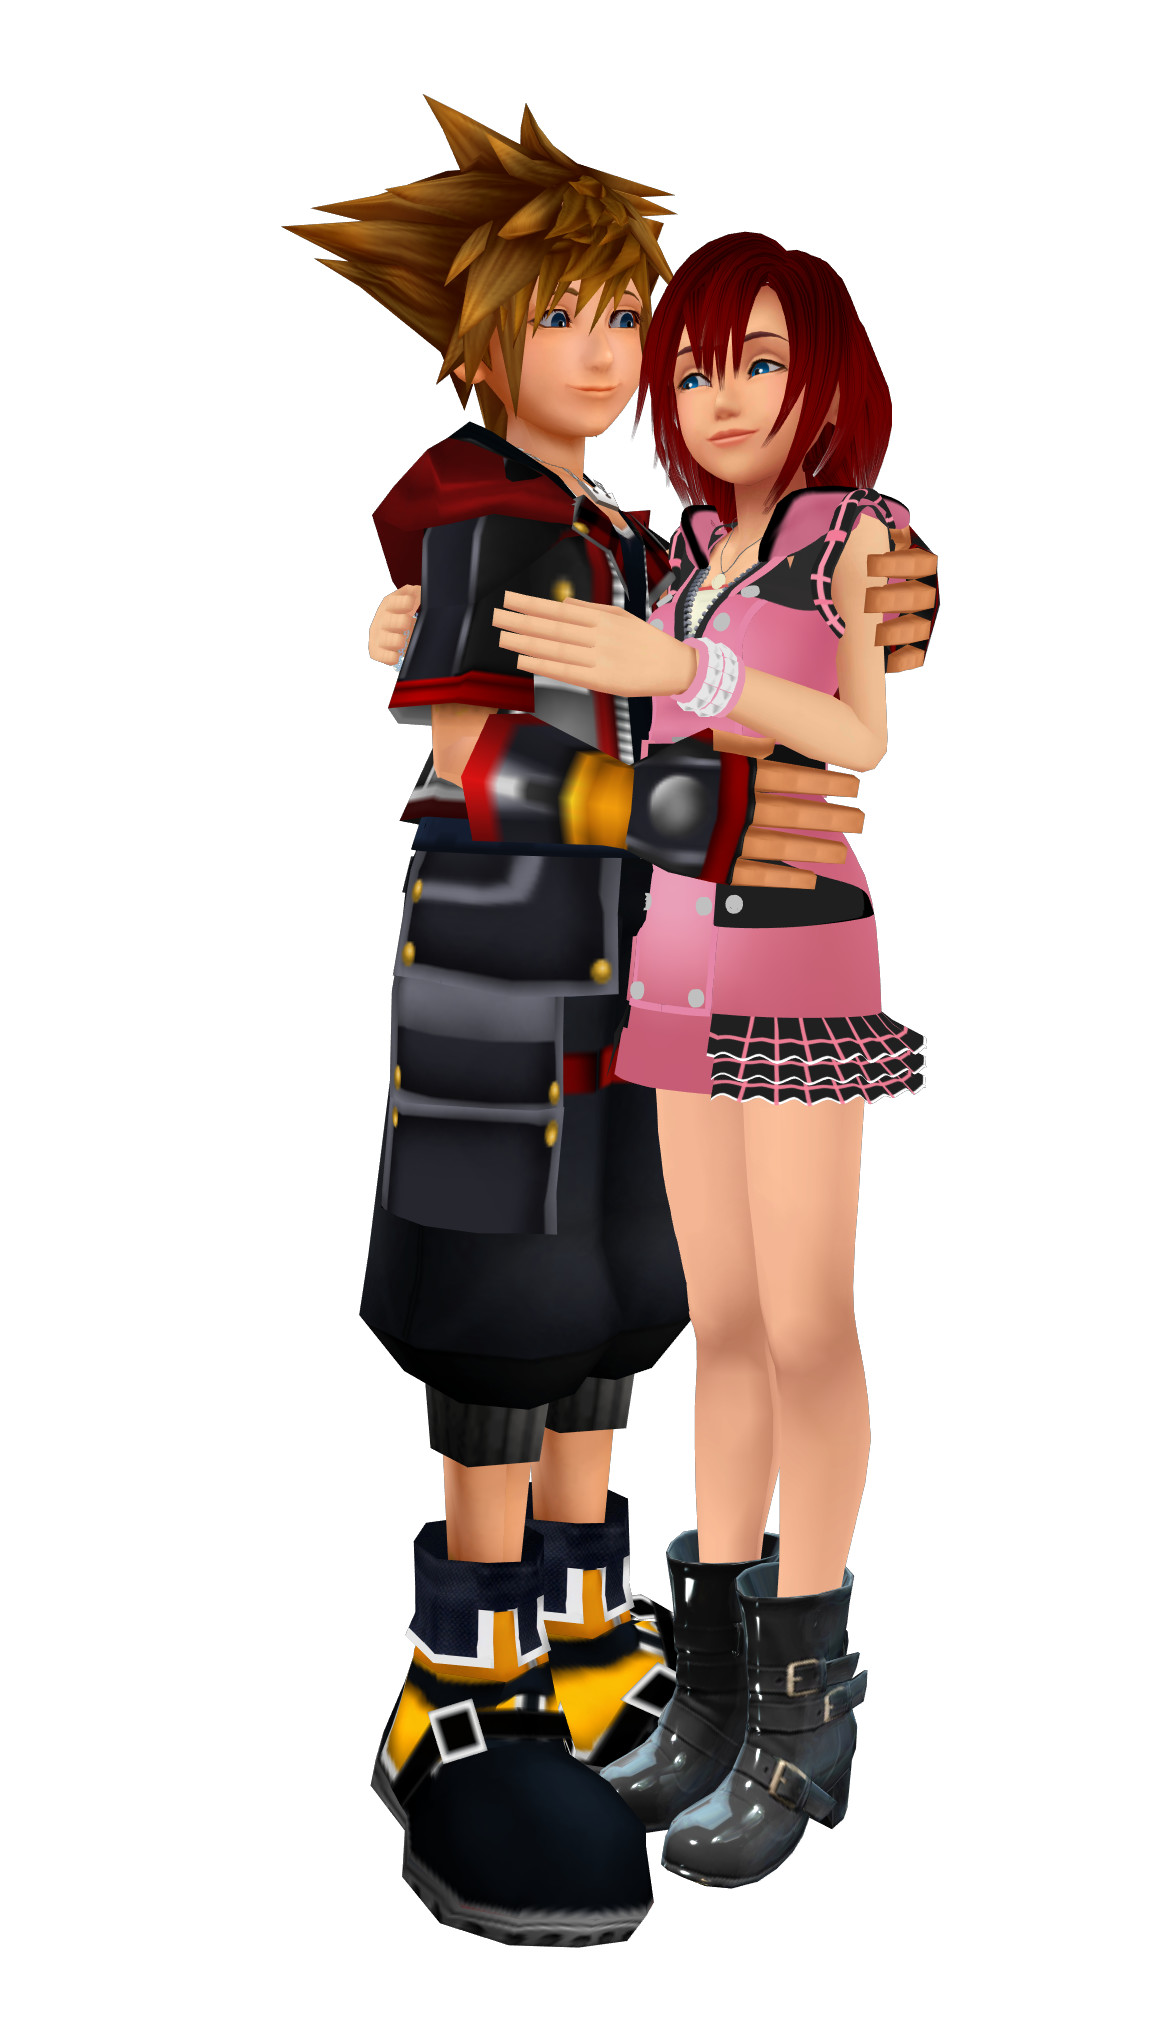 Res: 1160x2040, Kairi & Sora images The Kingdom Hearts III Sora x Kairi. Better .2019 HD  wallpaper and background photos